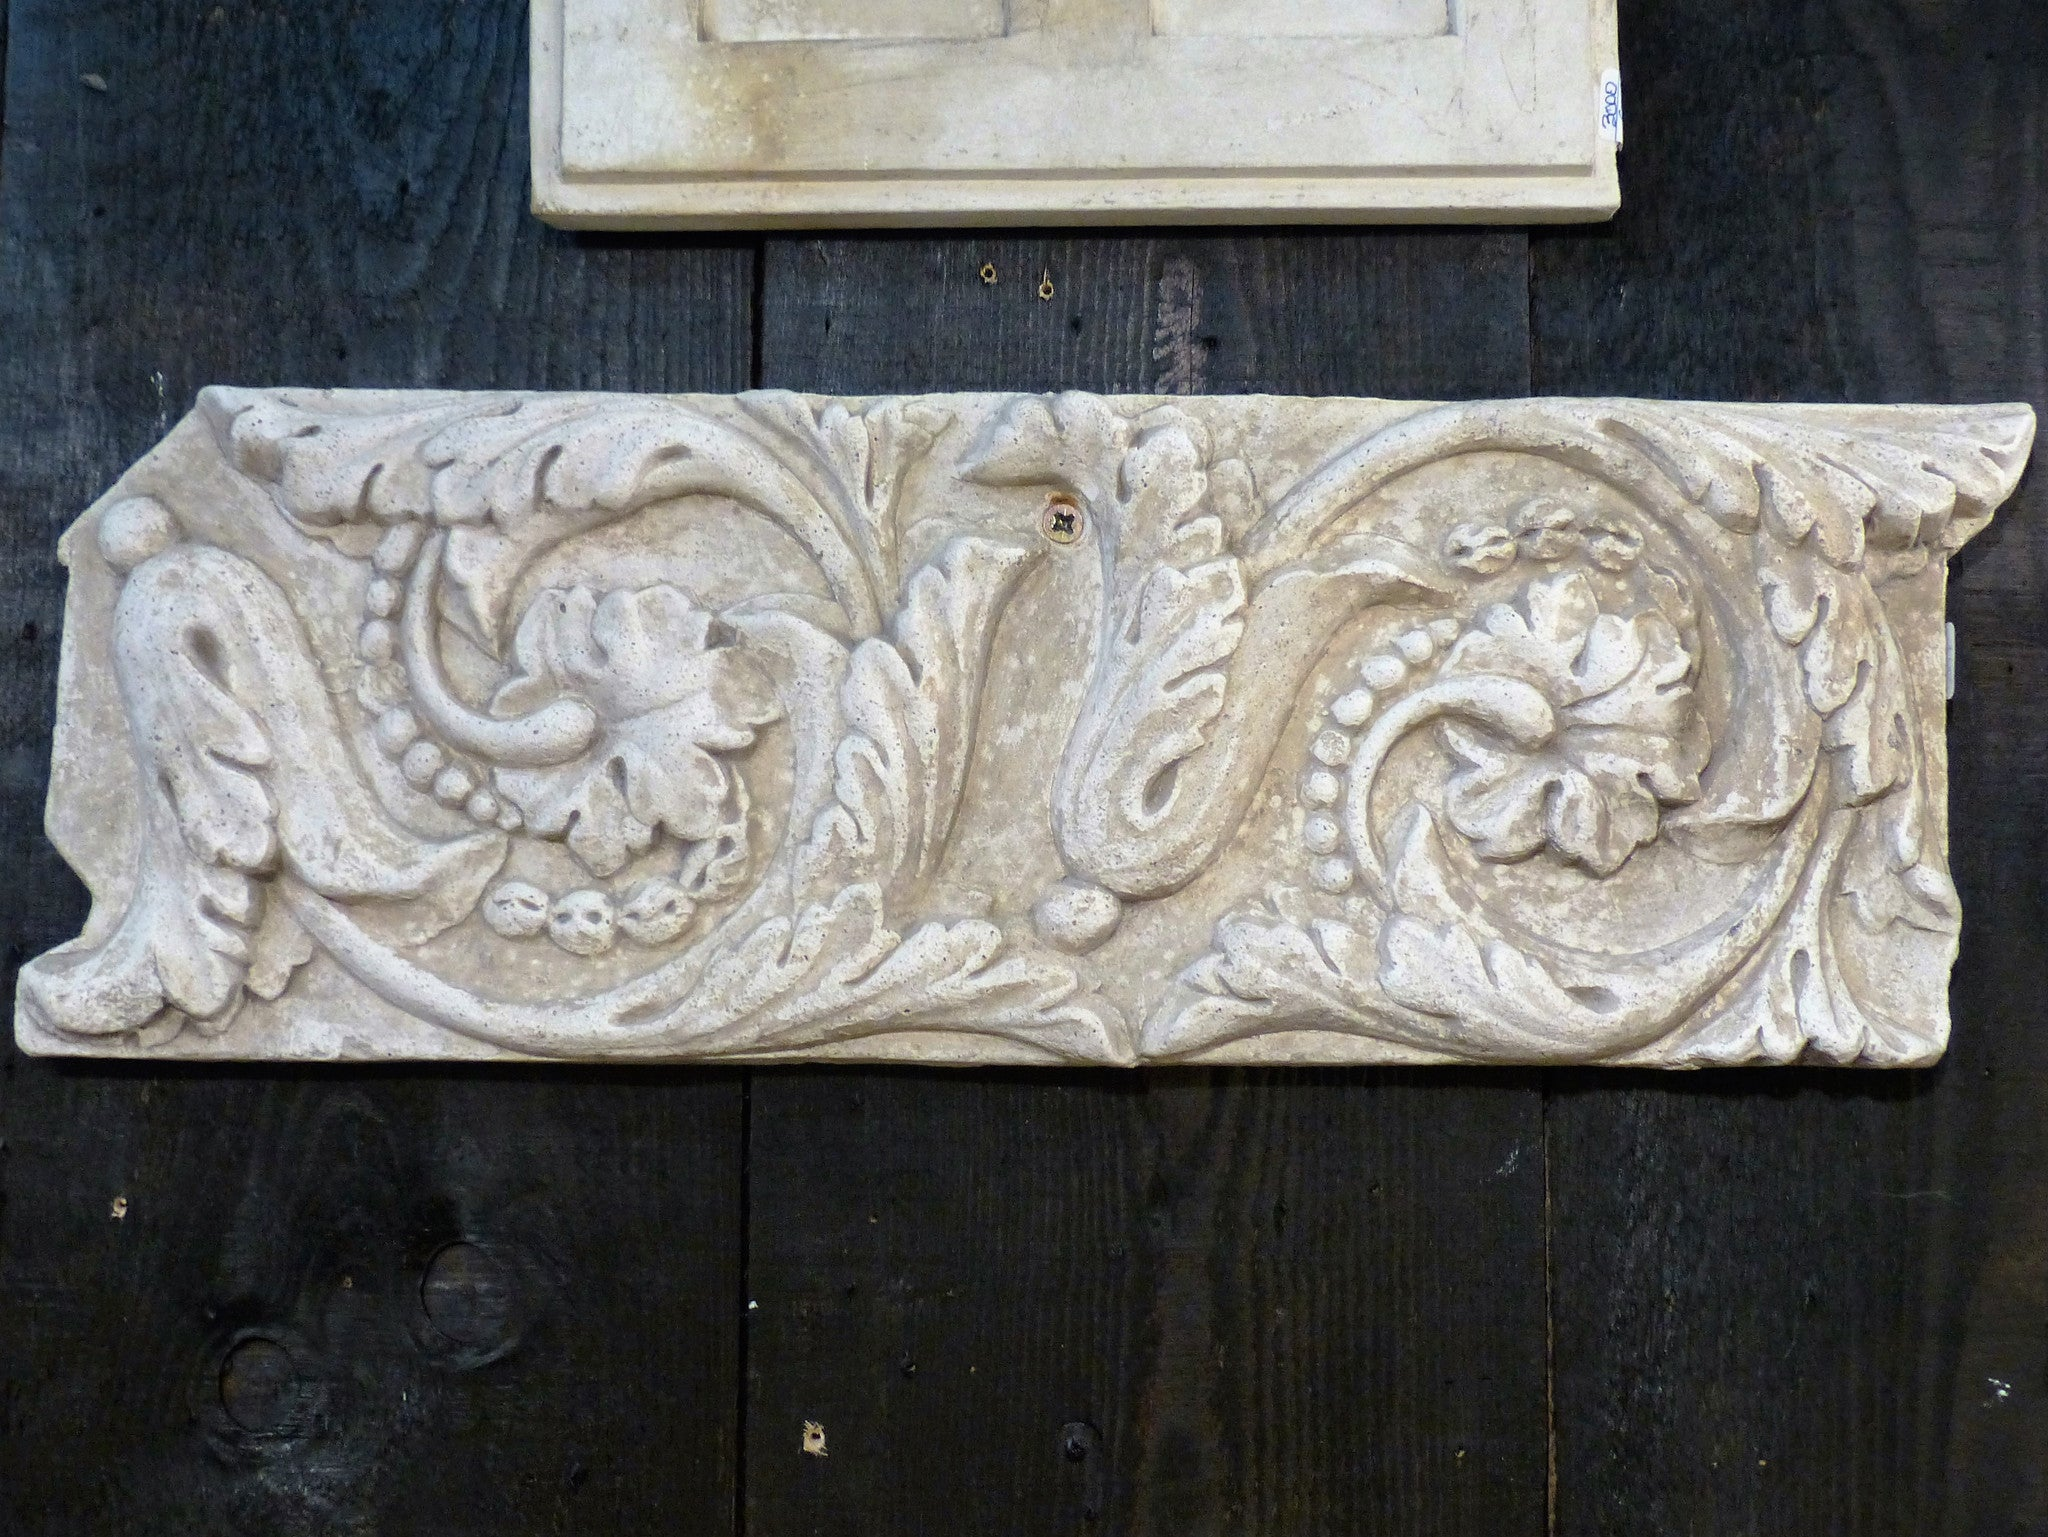 Plaster moulding from French architecture school collectible Patina Farm style